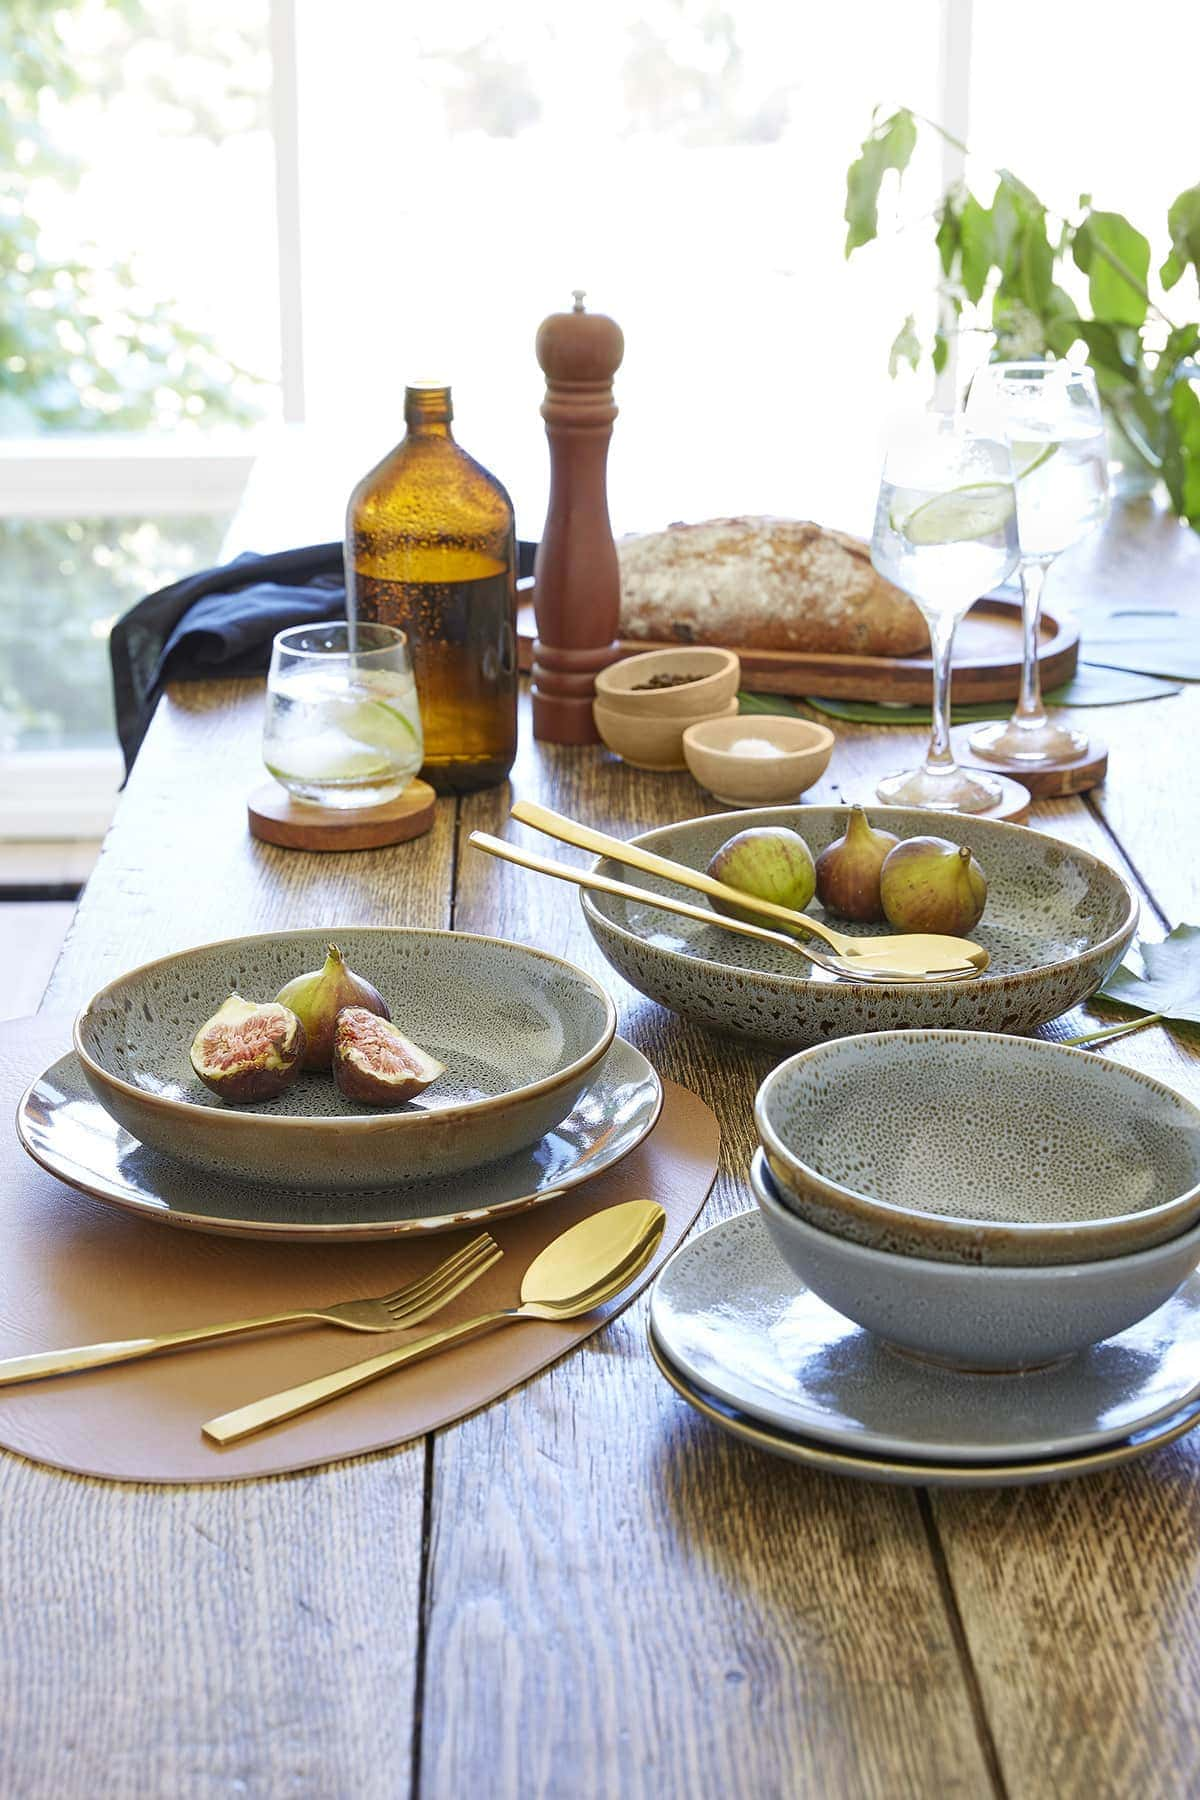 kmart speckled bowls and plates with gold cutlery